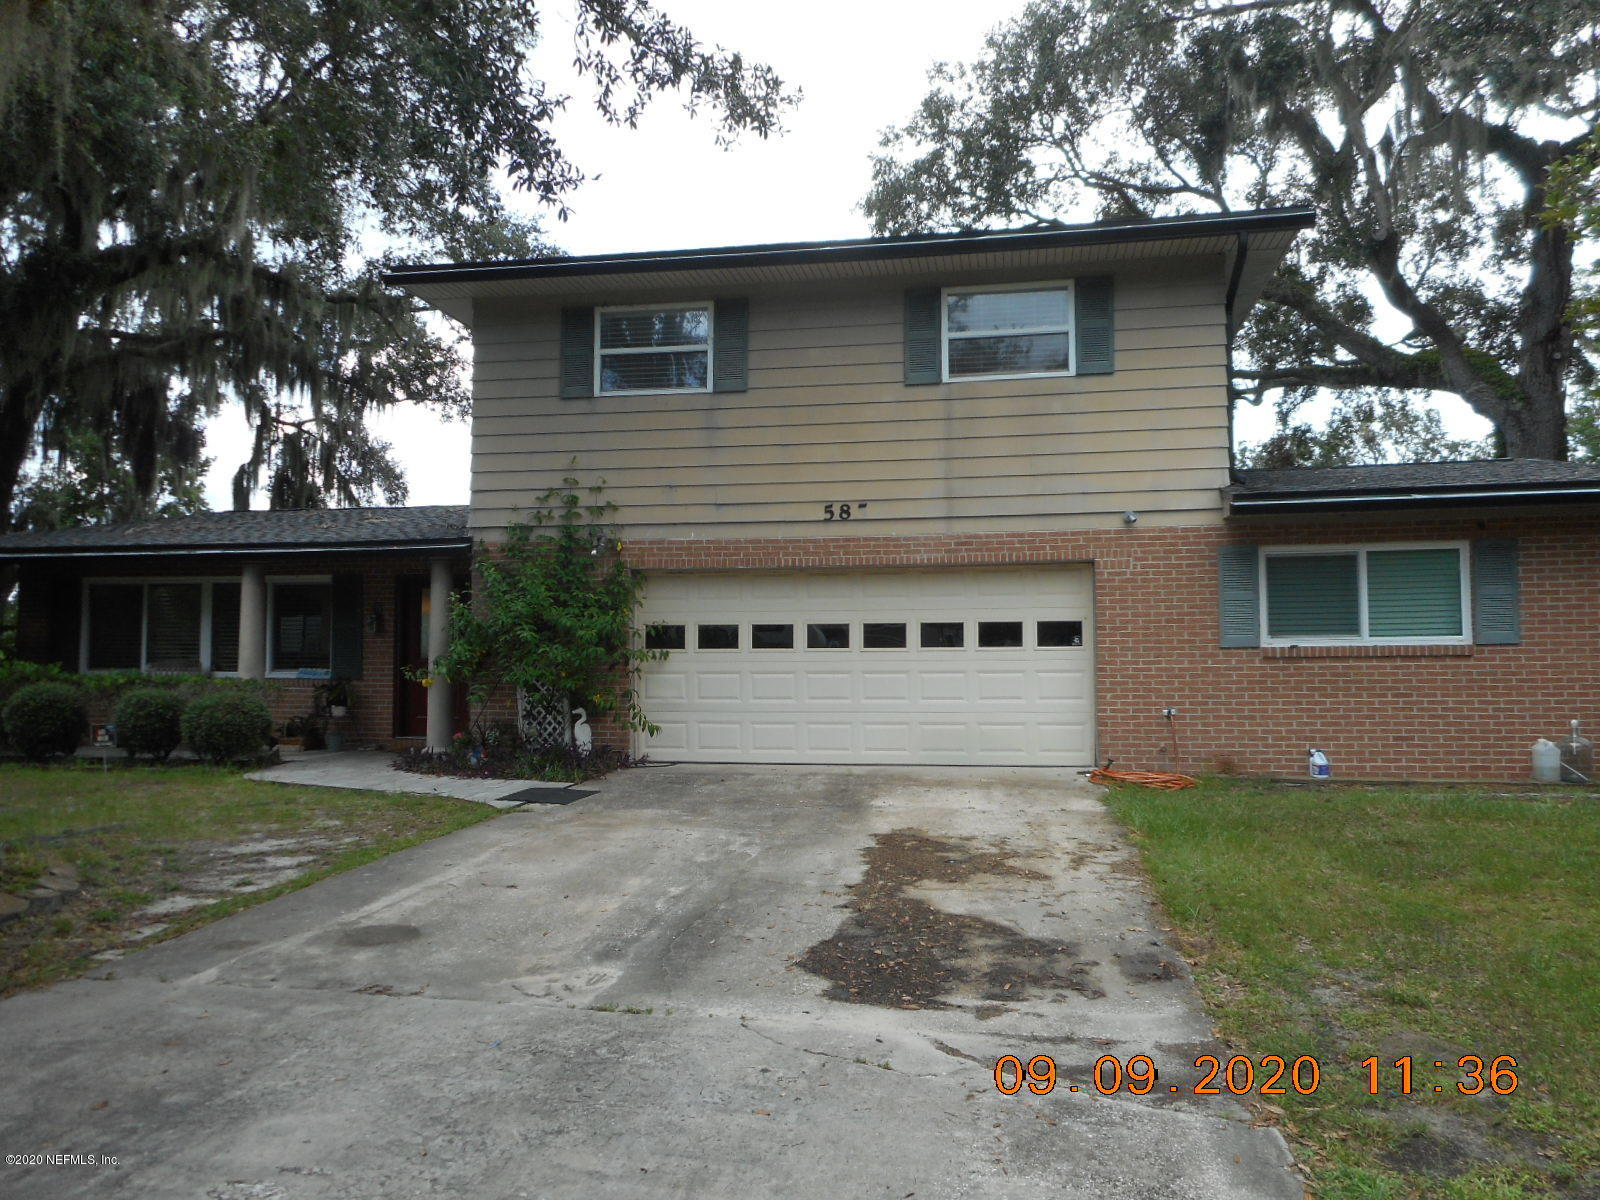 585 CREIGHTON, FLEMING ISLAND, FLORIDA 32003, 4 Bedrooms Bedrooms, ,2 BathroomsBathrooms,Residential,For sale,CREIGHTON,1072445